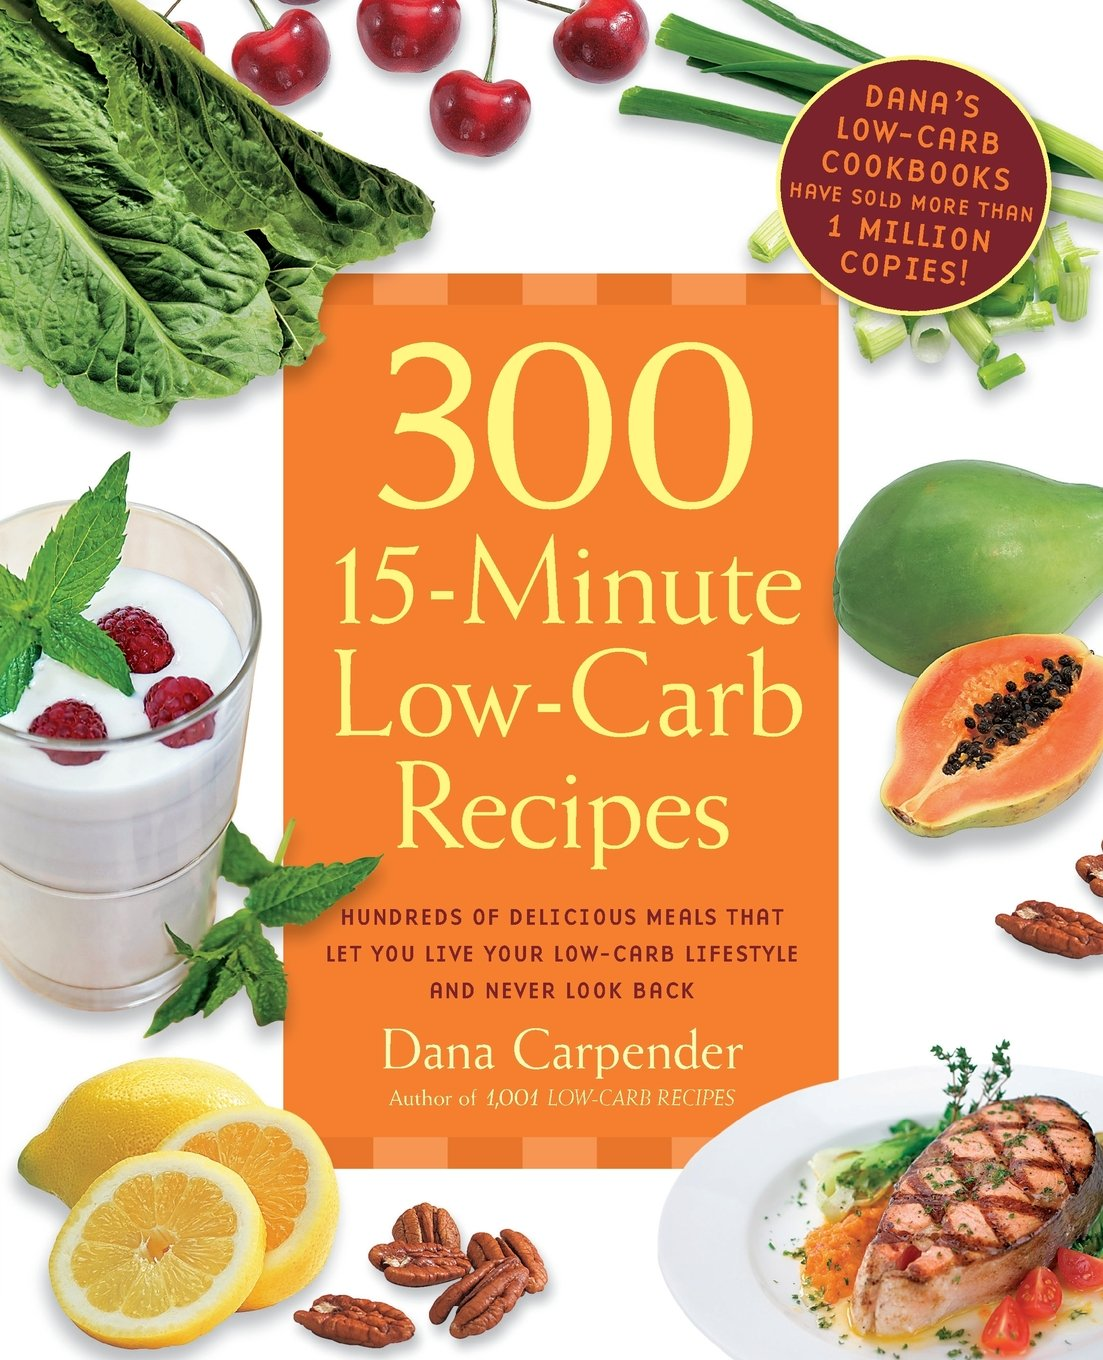 300 15 Minute Low Carb Recipes Hundreds Of Delicious Meals That Let You Live Your Low Carb Lifestyle And Never Look Back Amazon De Carpender Dana Fremdsprachige Bucher